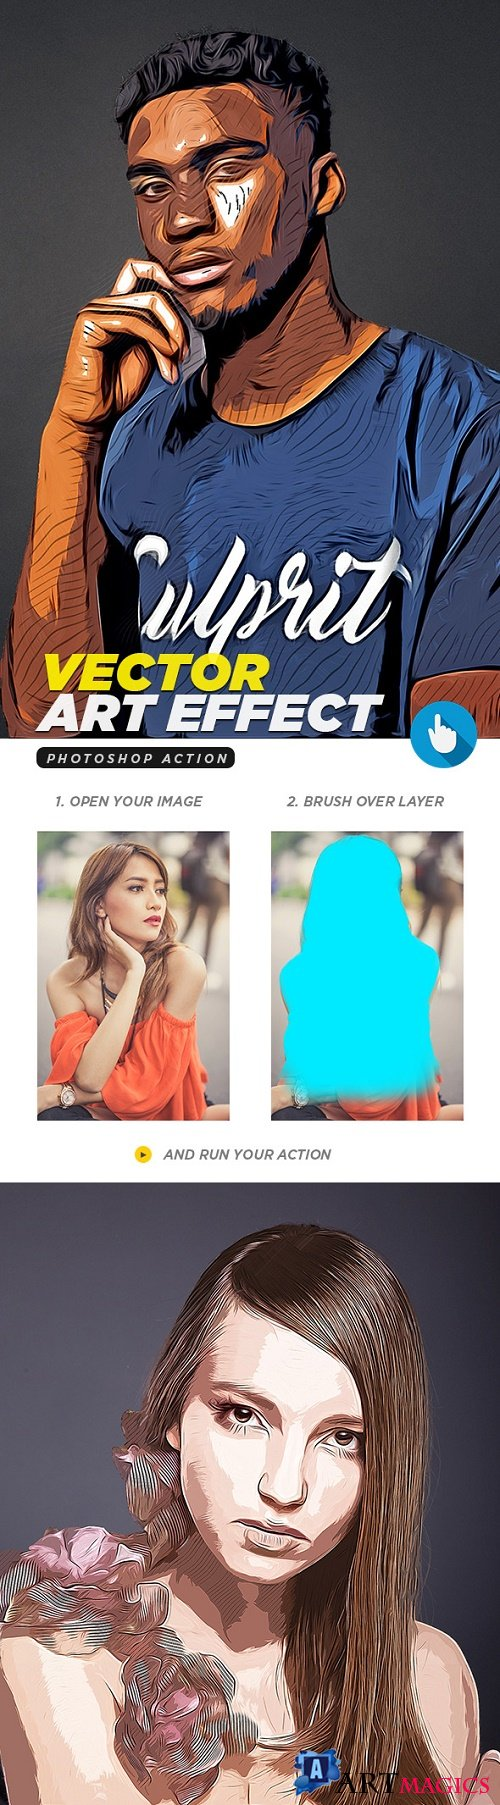 Vector Art Photoshop Action 21669828